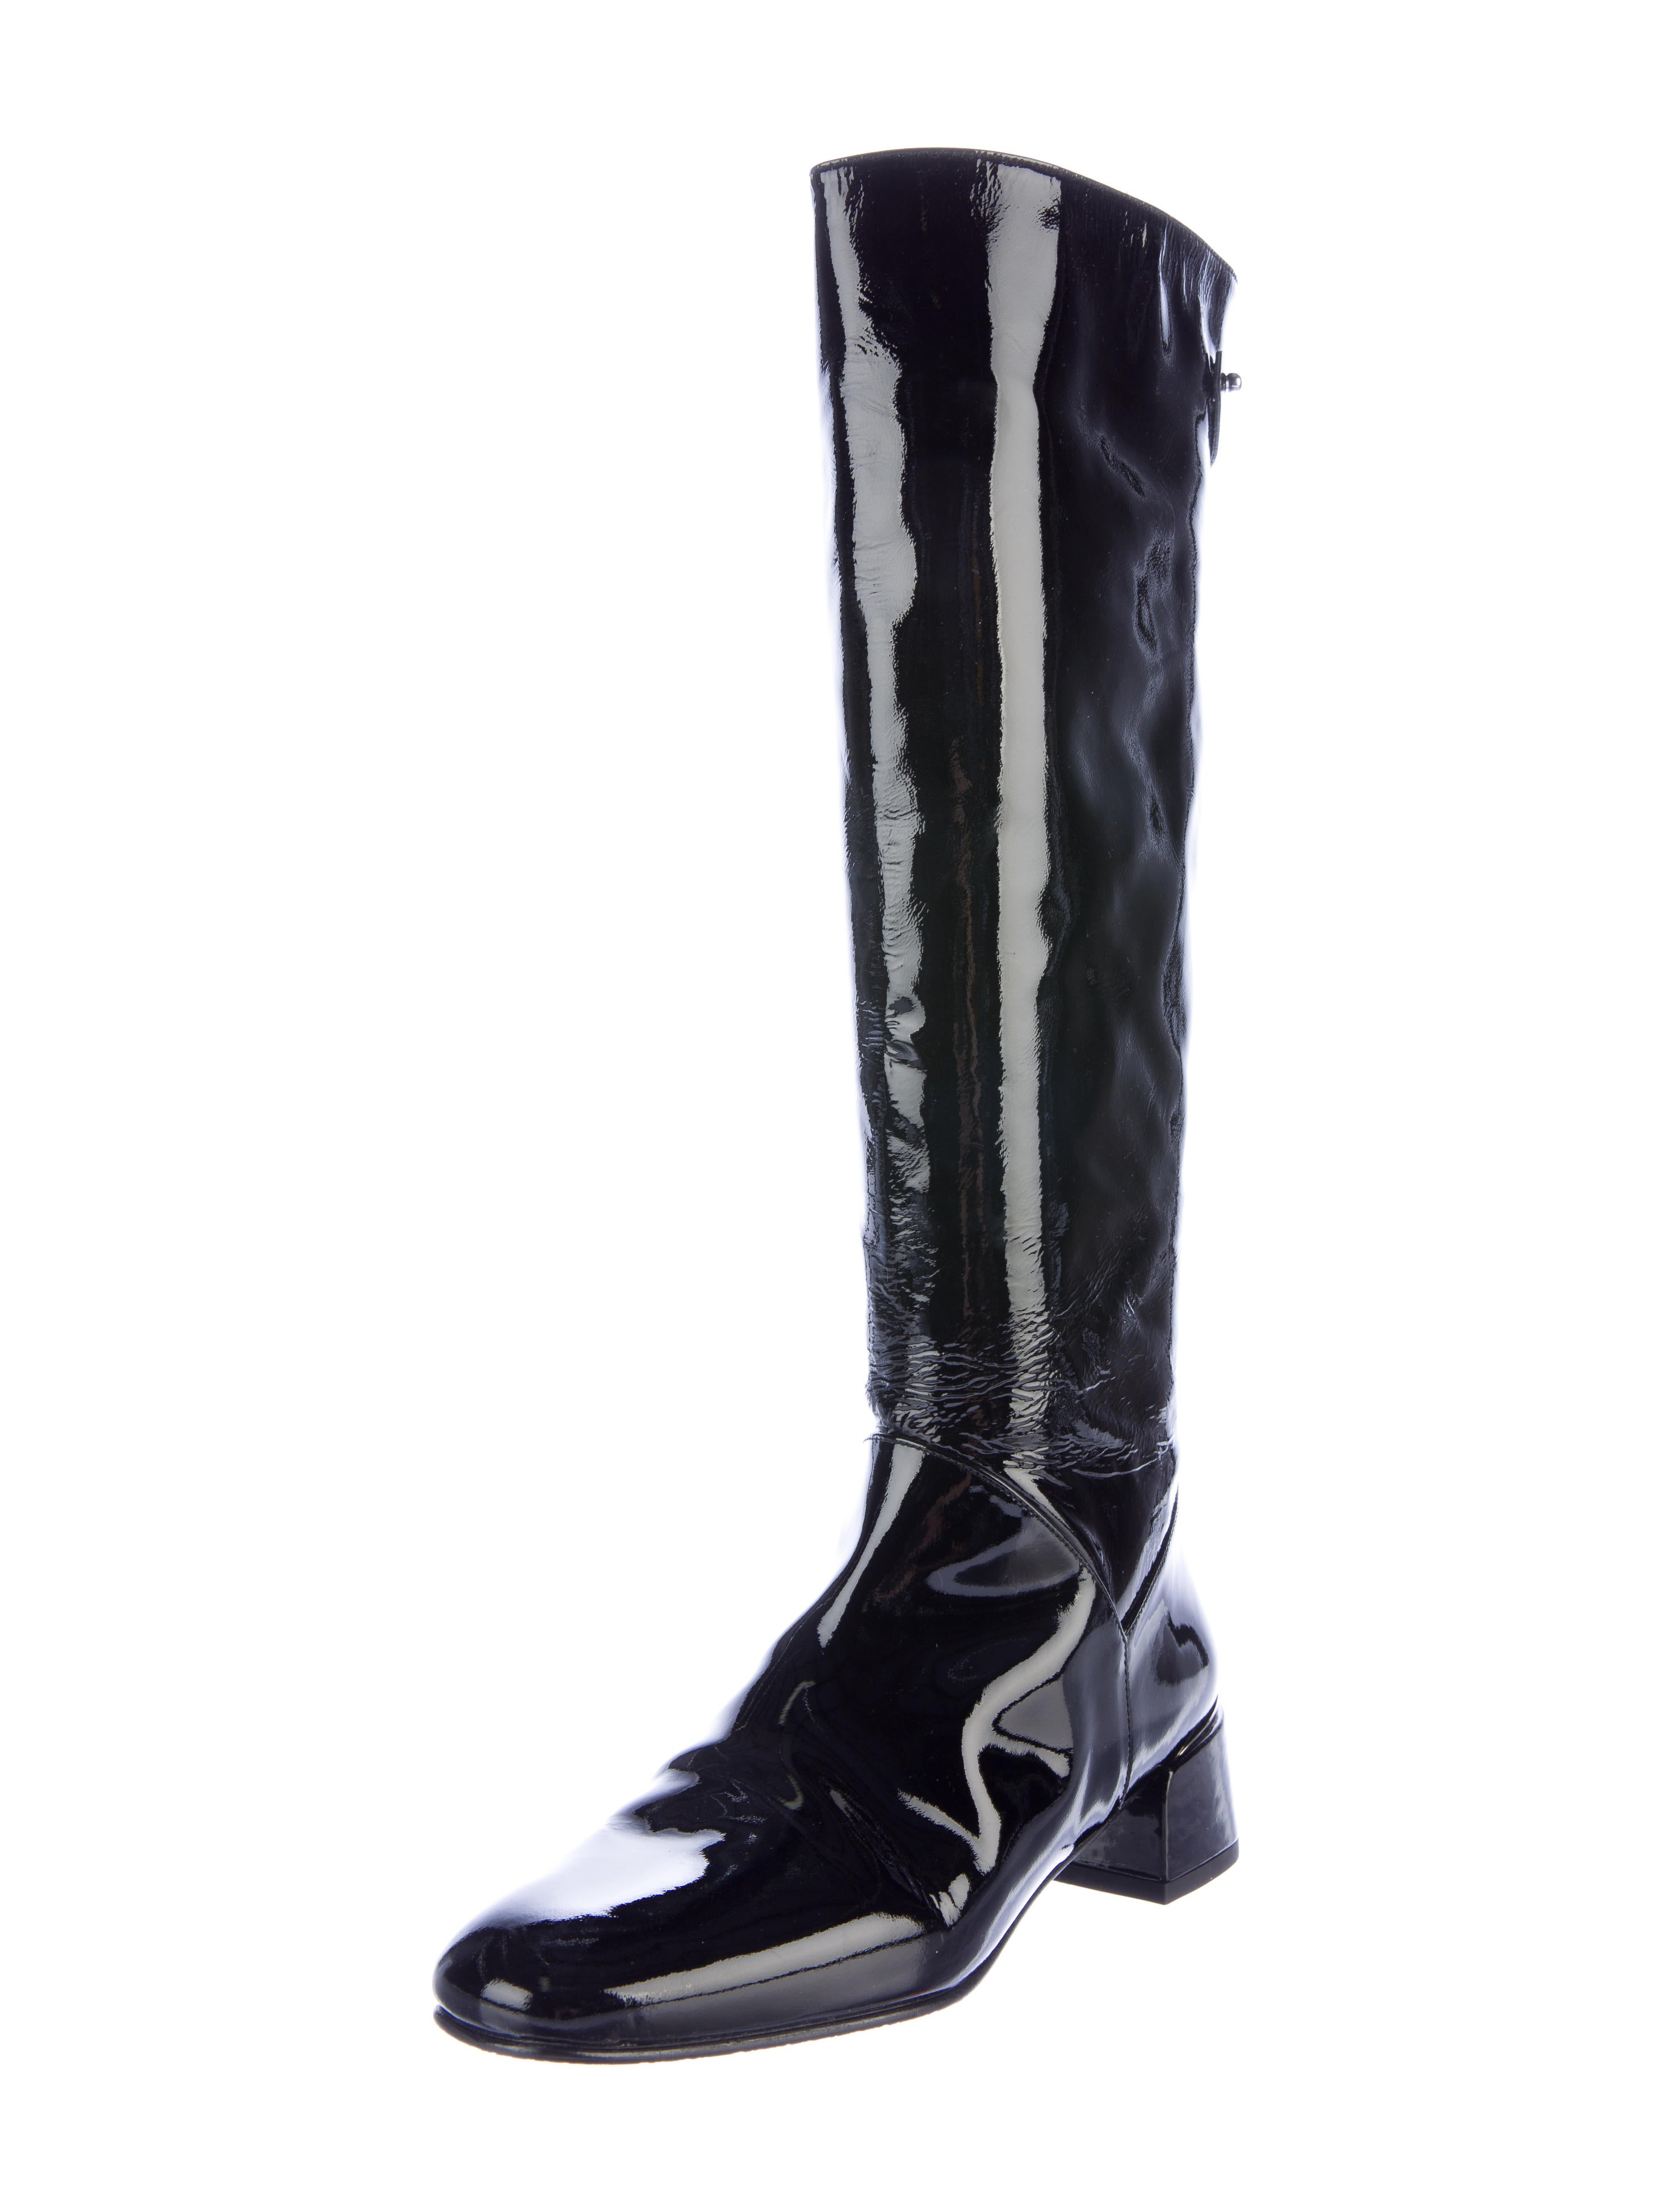 stuart weitzman patent leather knee high boots shoes